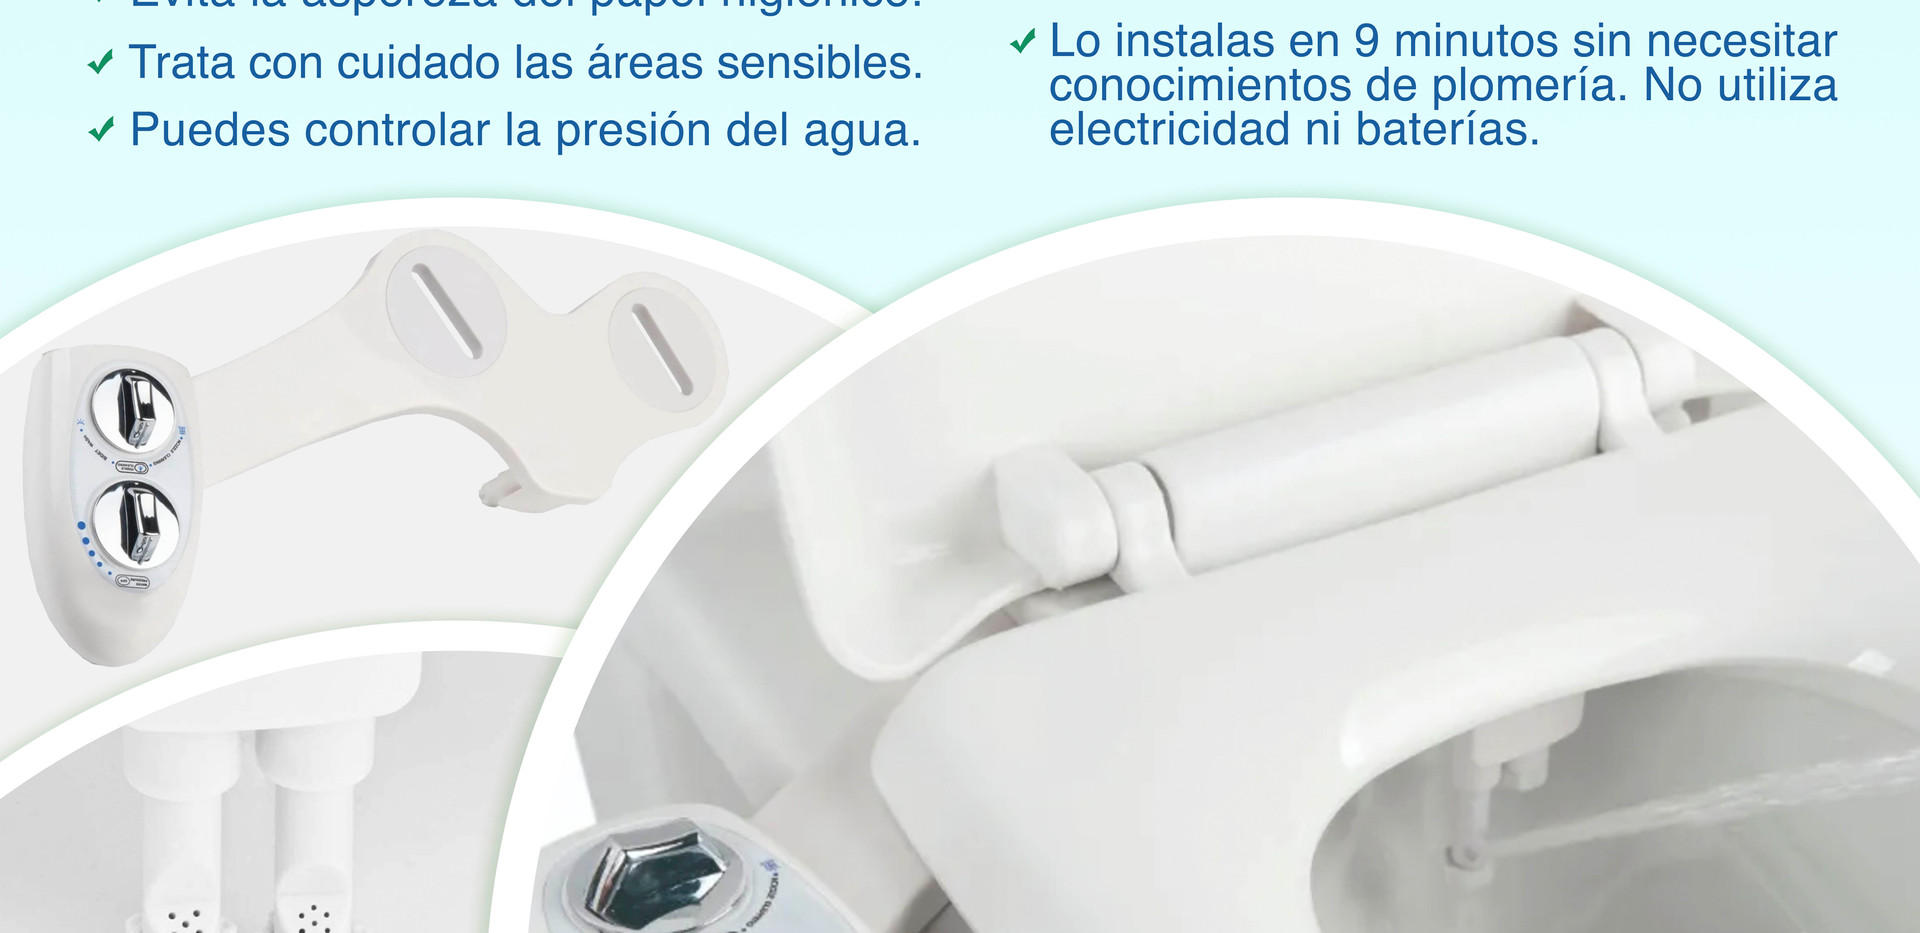 Bidet - Descripcion completa